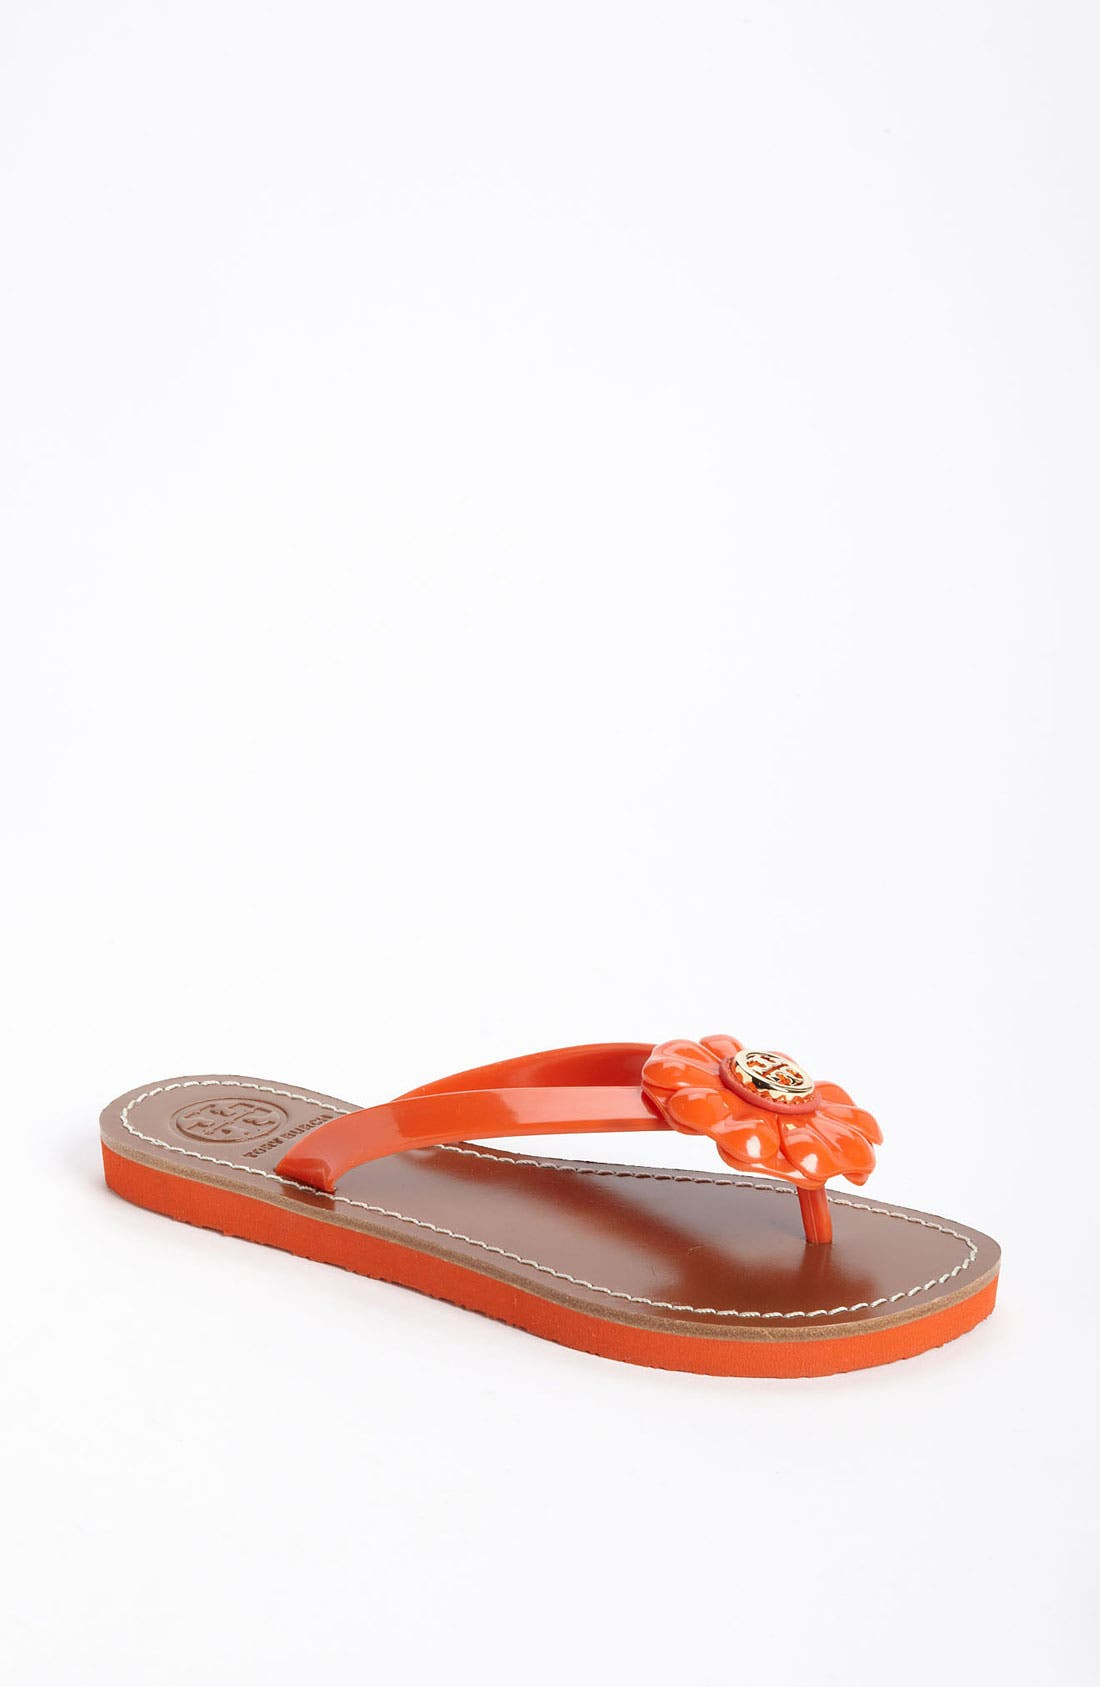 Alternate Image 1 Selected - Tory Burch 'Adalia' Thong Sandal